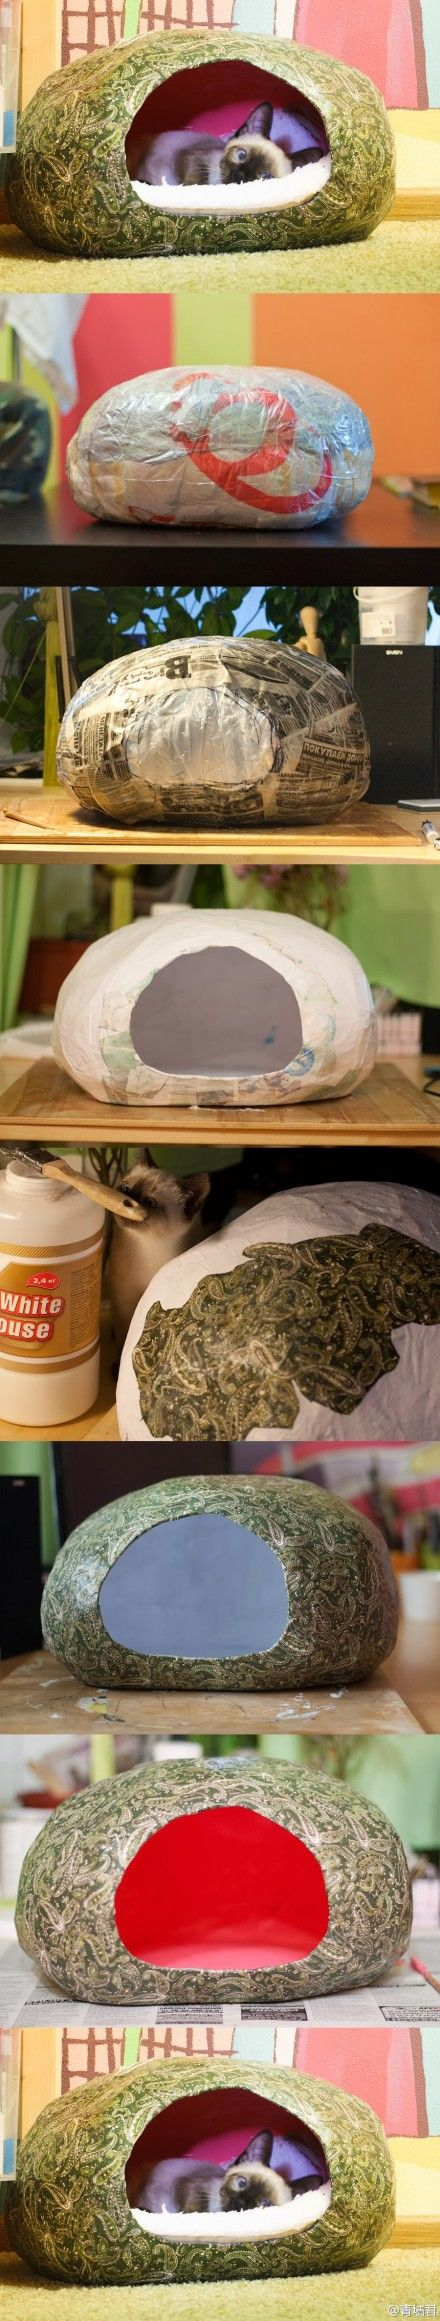 Homemade pet nest made with paper mache.